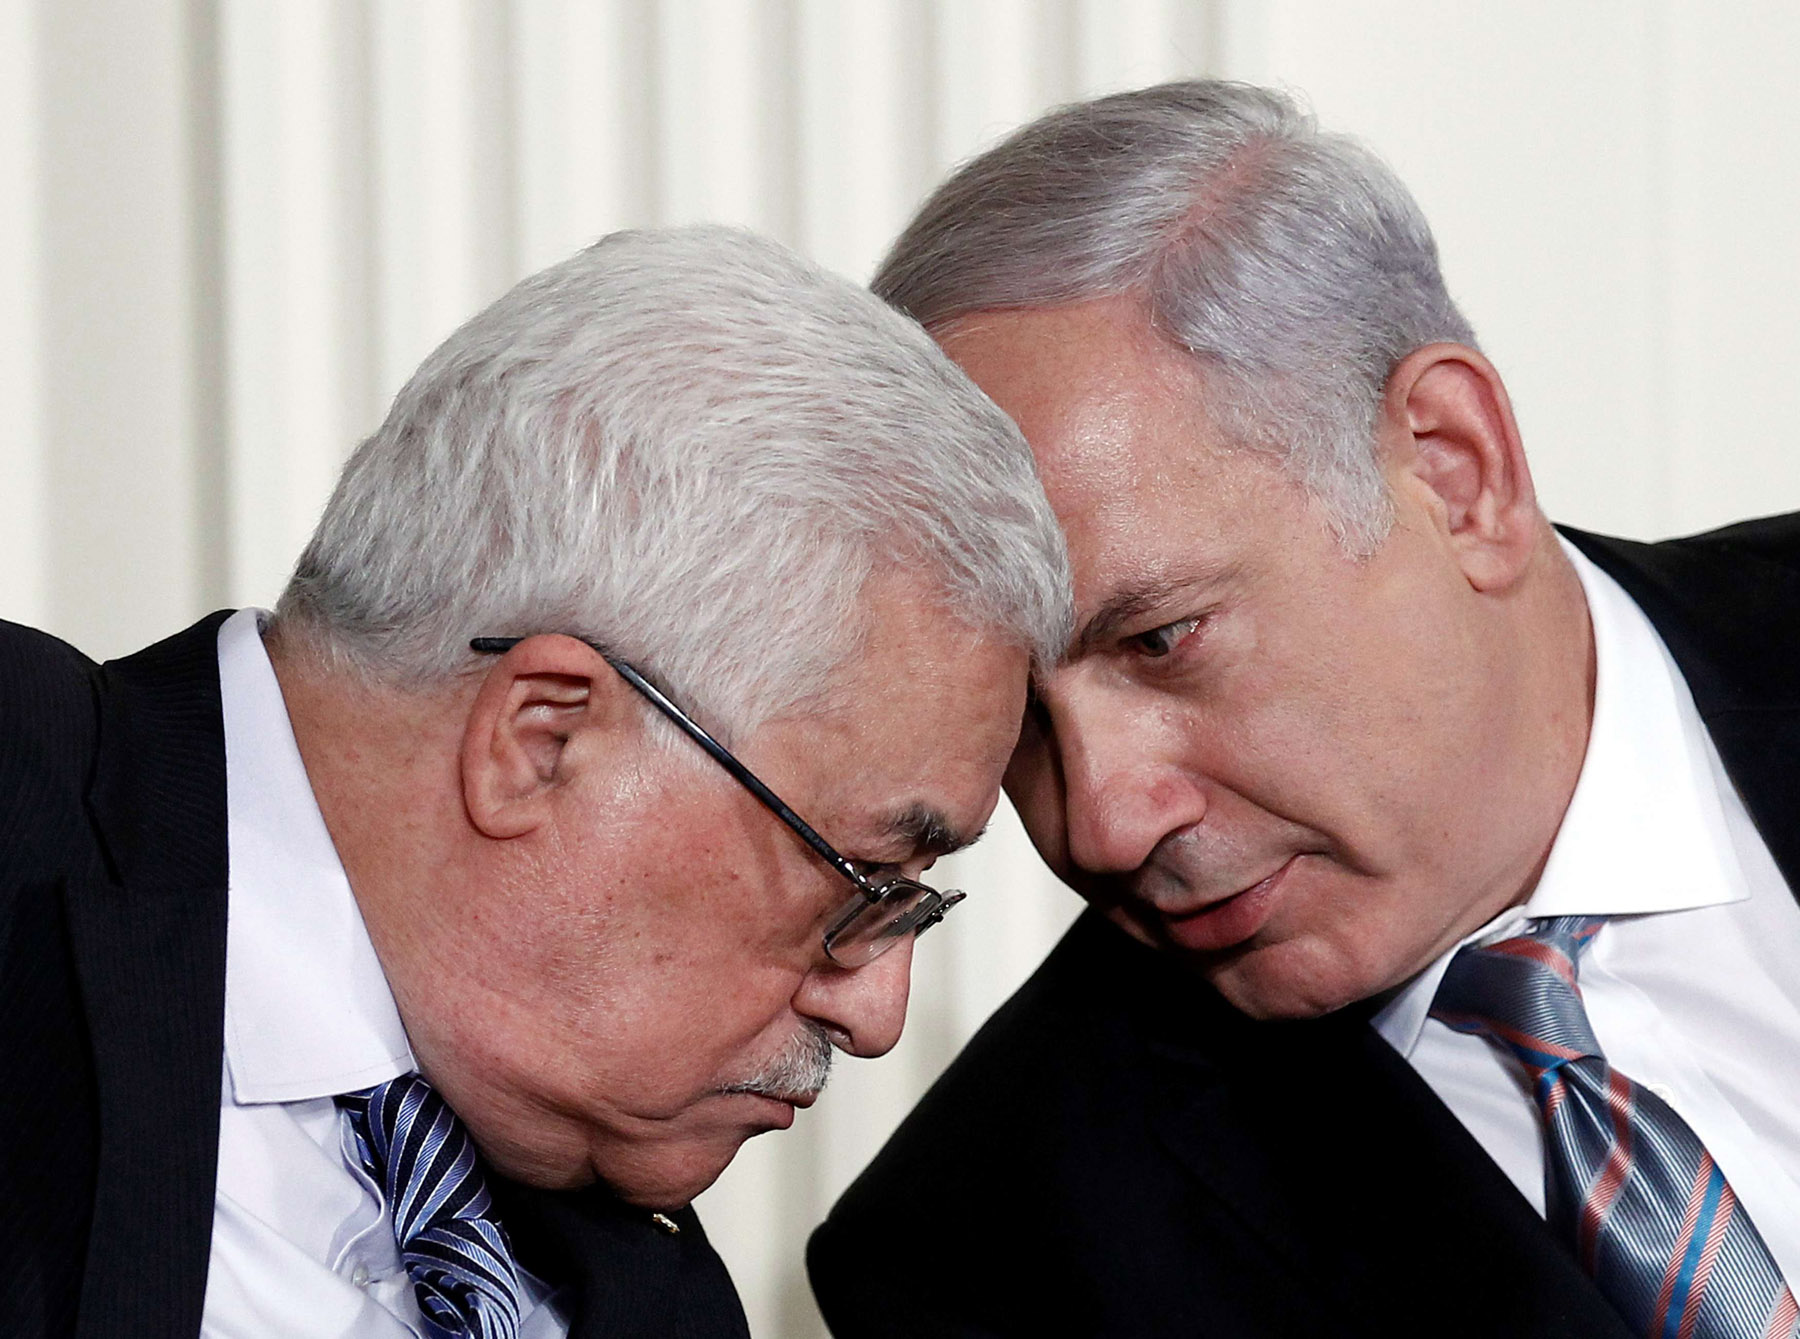 A 2010 file picture shows Israeli Prime Minister Binyamin Netanyahu (R) and Palestinian President Mahmoud Abbas speaking during an event at the White House in Washington. (Reuters)